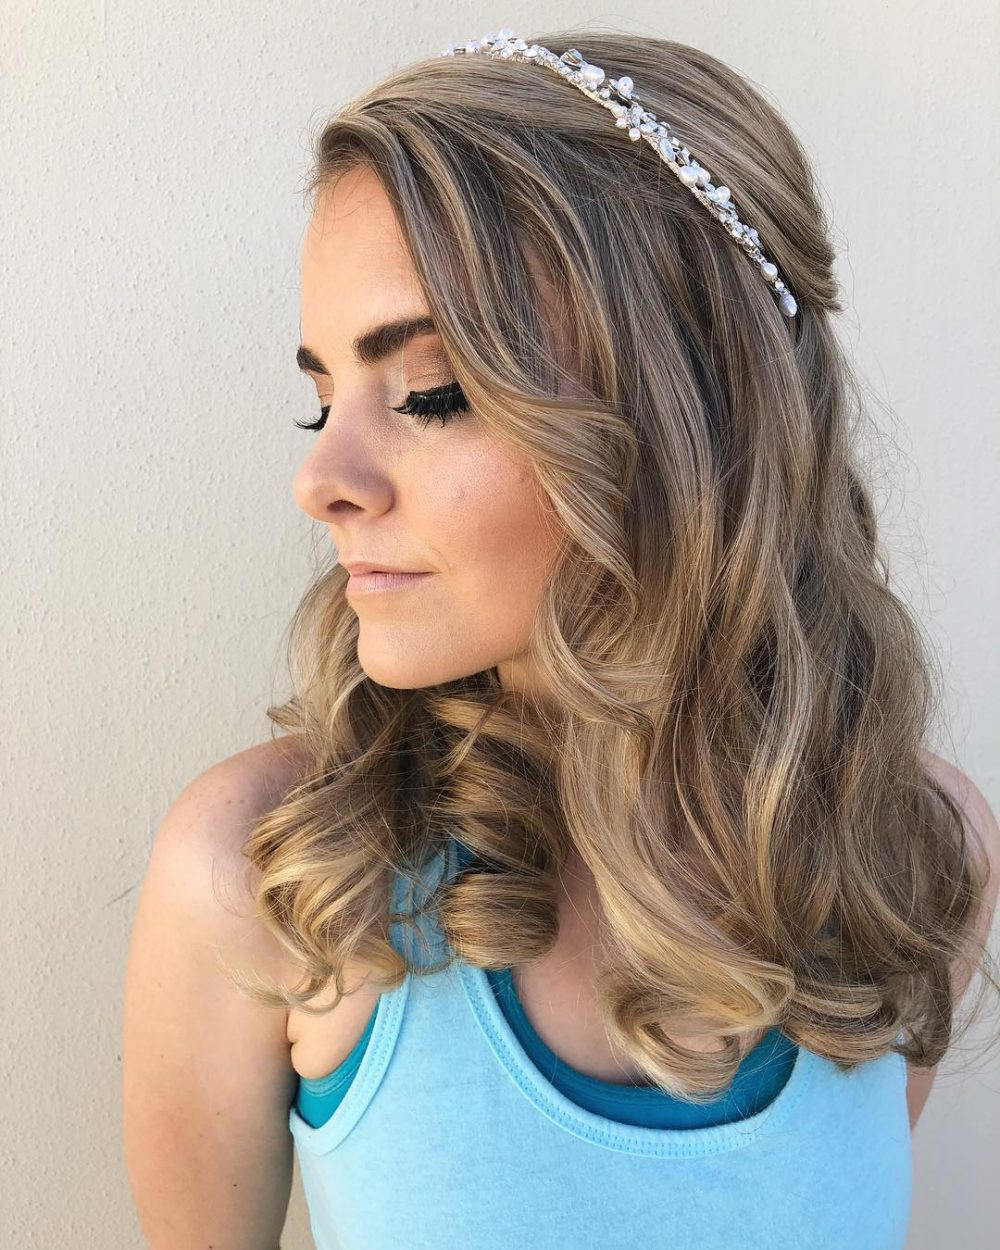 medium hair formal styles prom hairstyles with a headband hairstyles by unixcode 3330